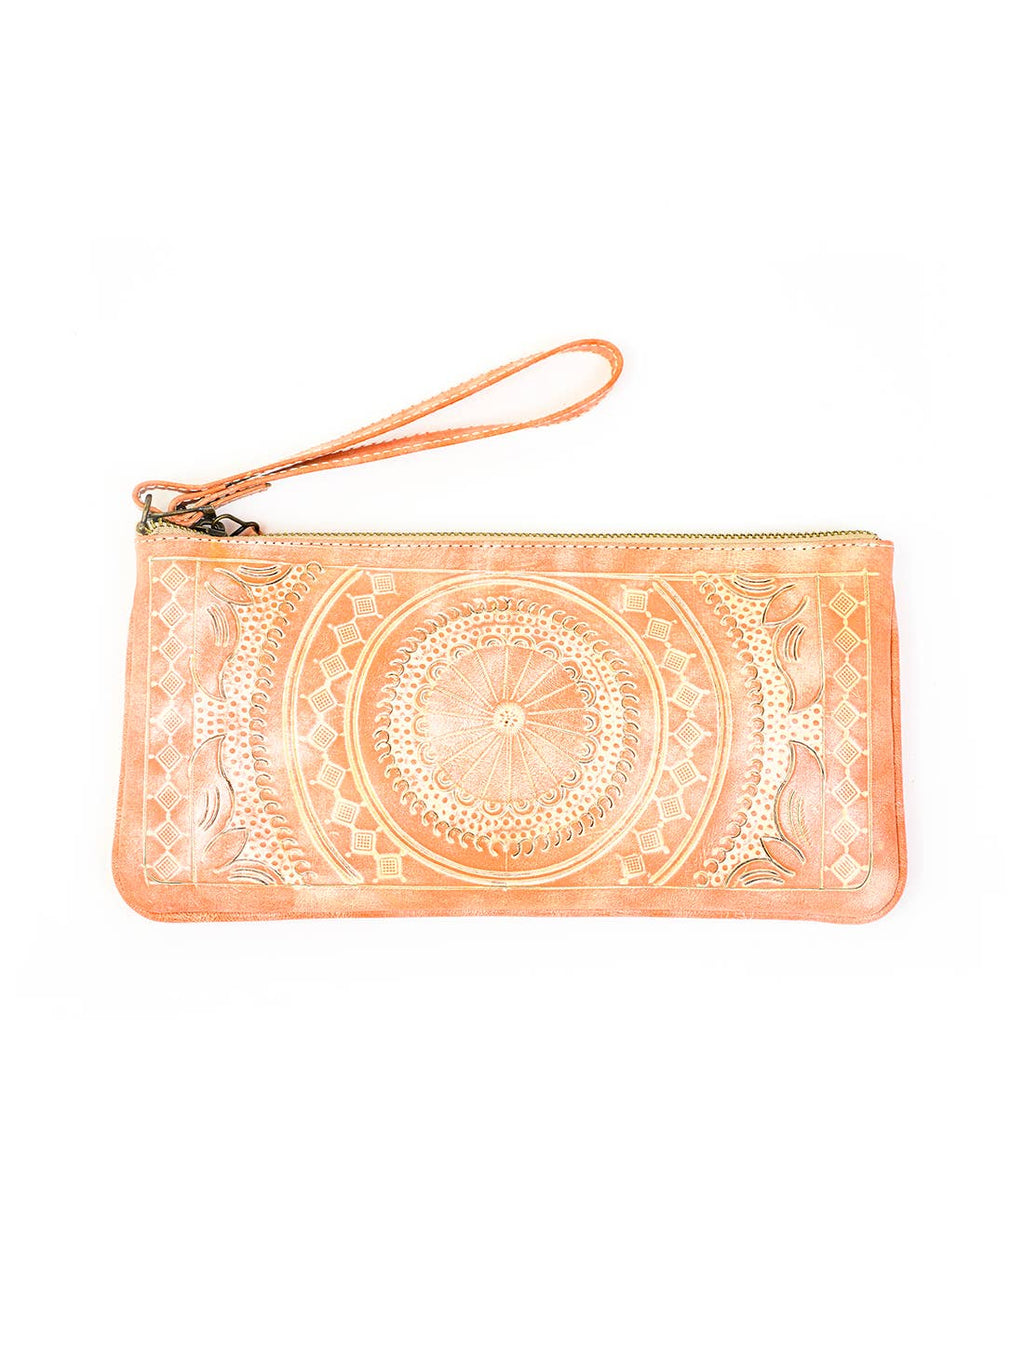 LEADERS IN LEATHER - 4010T Moroccan Clutch with Wristlet